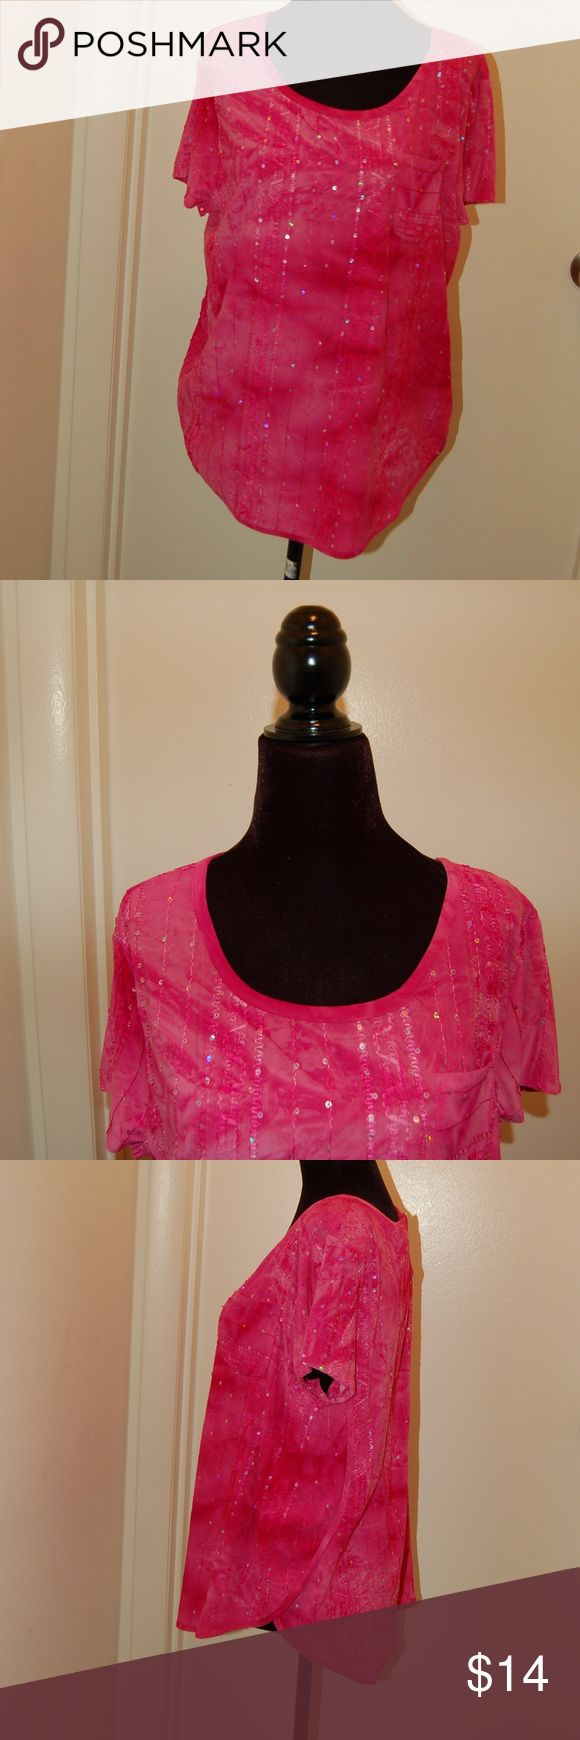 """Sami & Jo Pink Short Sleeve Top Cute pink top with sequins and breast pocket.  Bust: 41"""" Hem: 40"""" Shoulder width: 16 1/2"""" Sleeve length: 6"""" Length from the top of the back collar to the hem: 24 1/2"""" Sami & Jo Tops"""